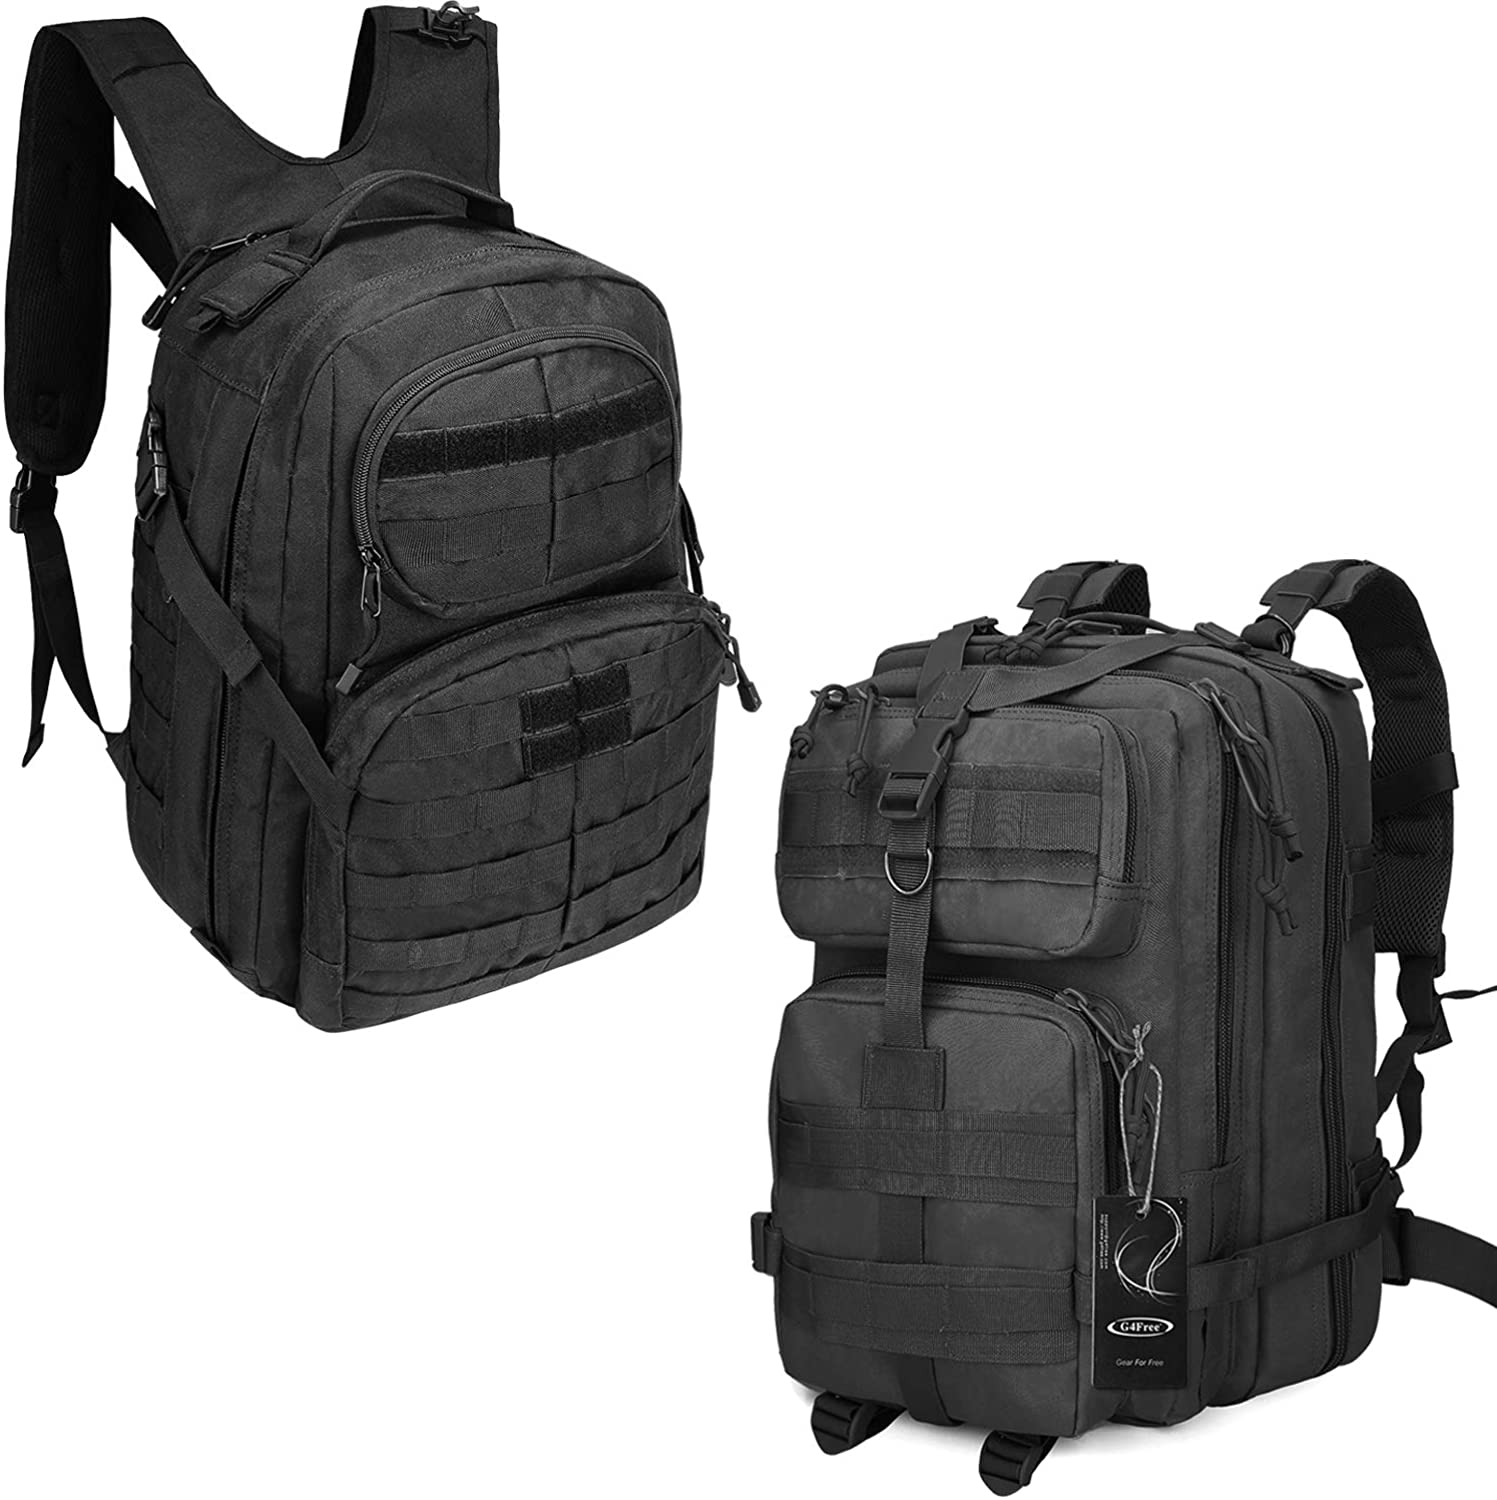 G4Free Tactical Backpack Military Style Pack Assault Pack 40L